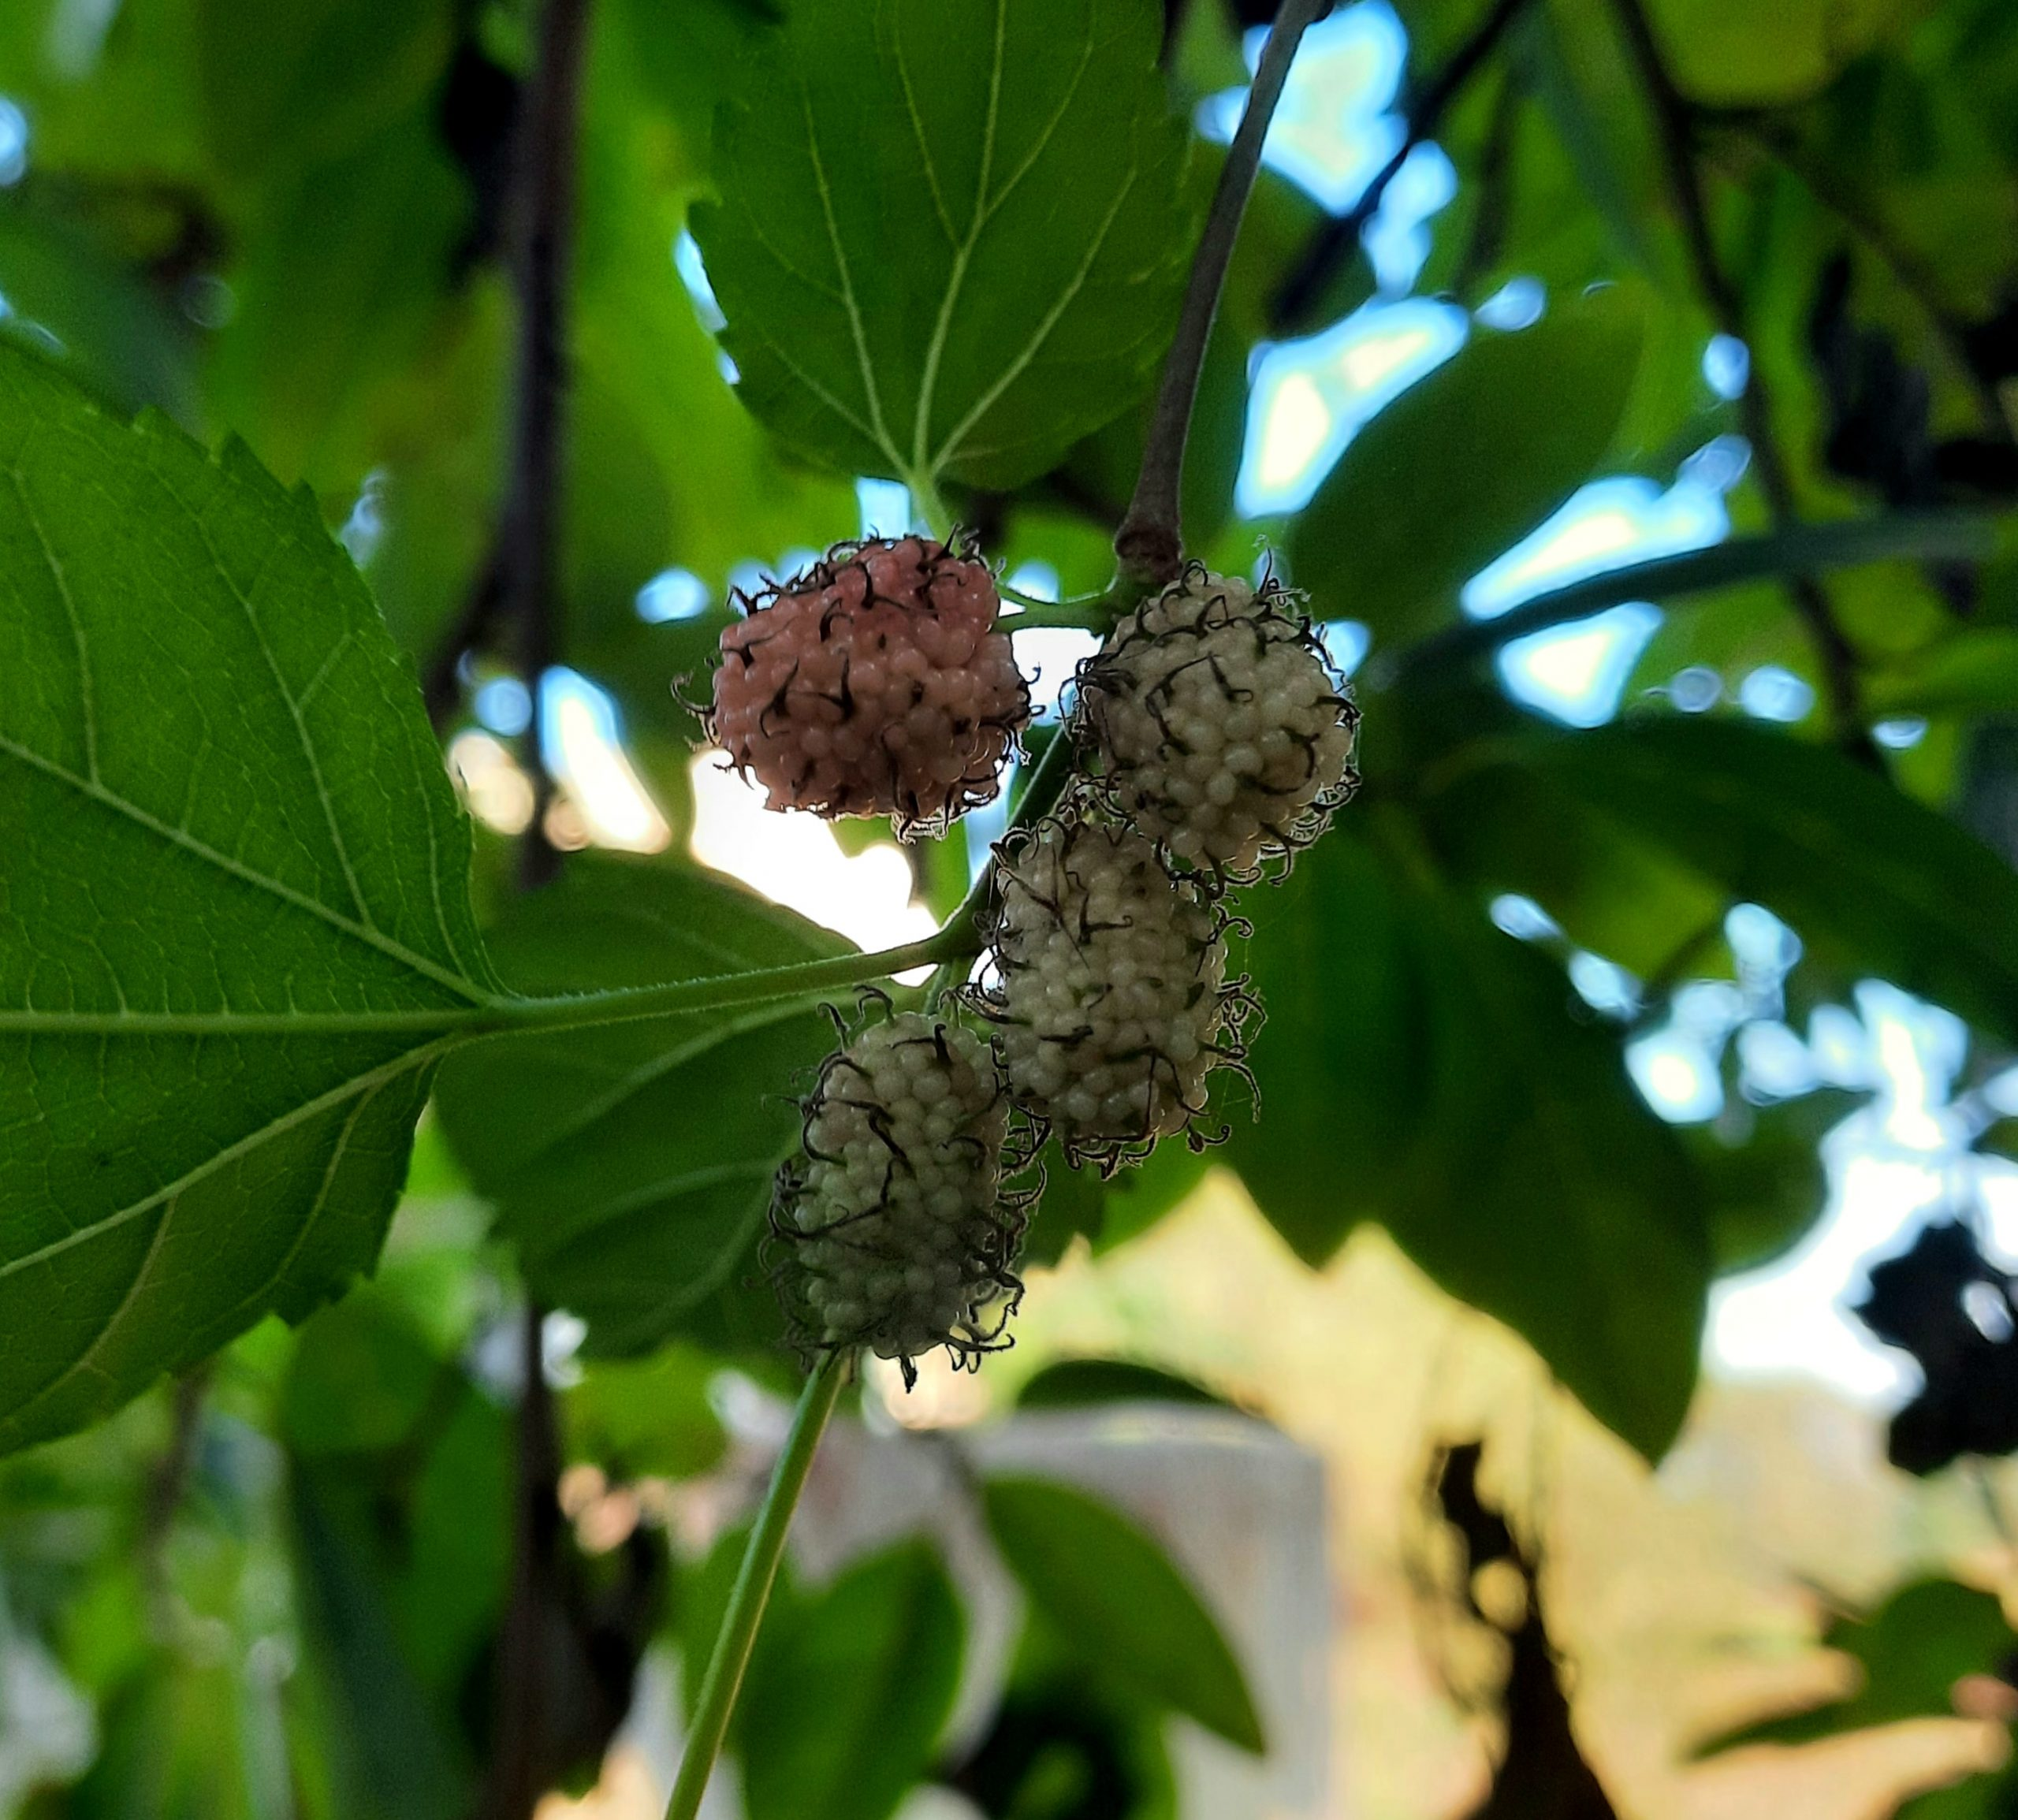 Mulberries on a tree